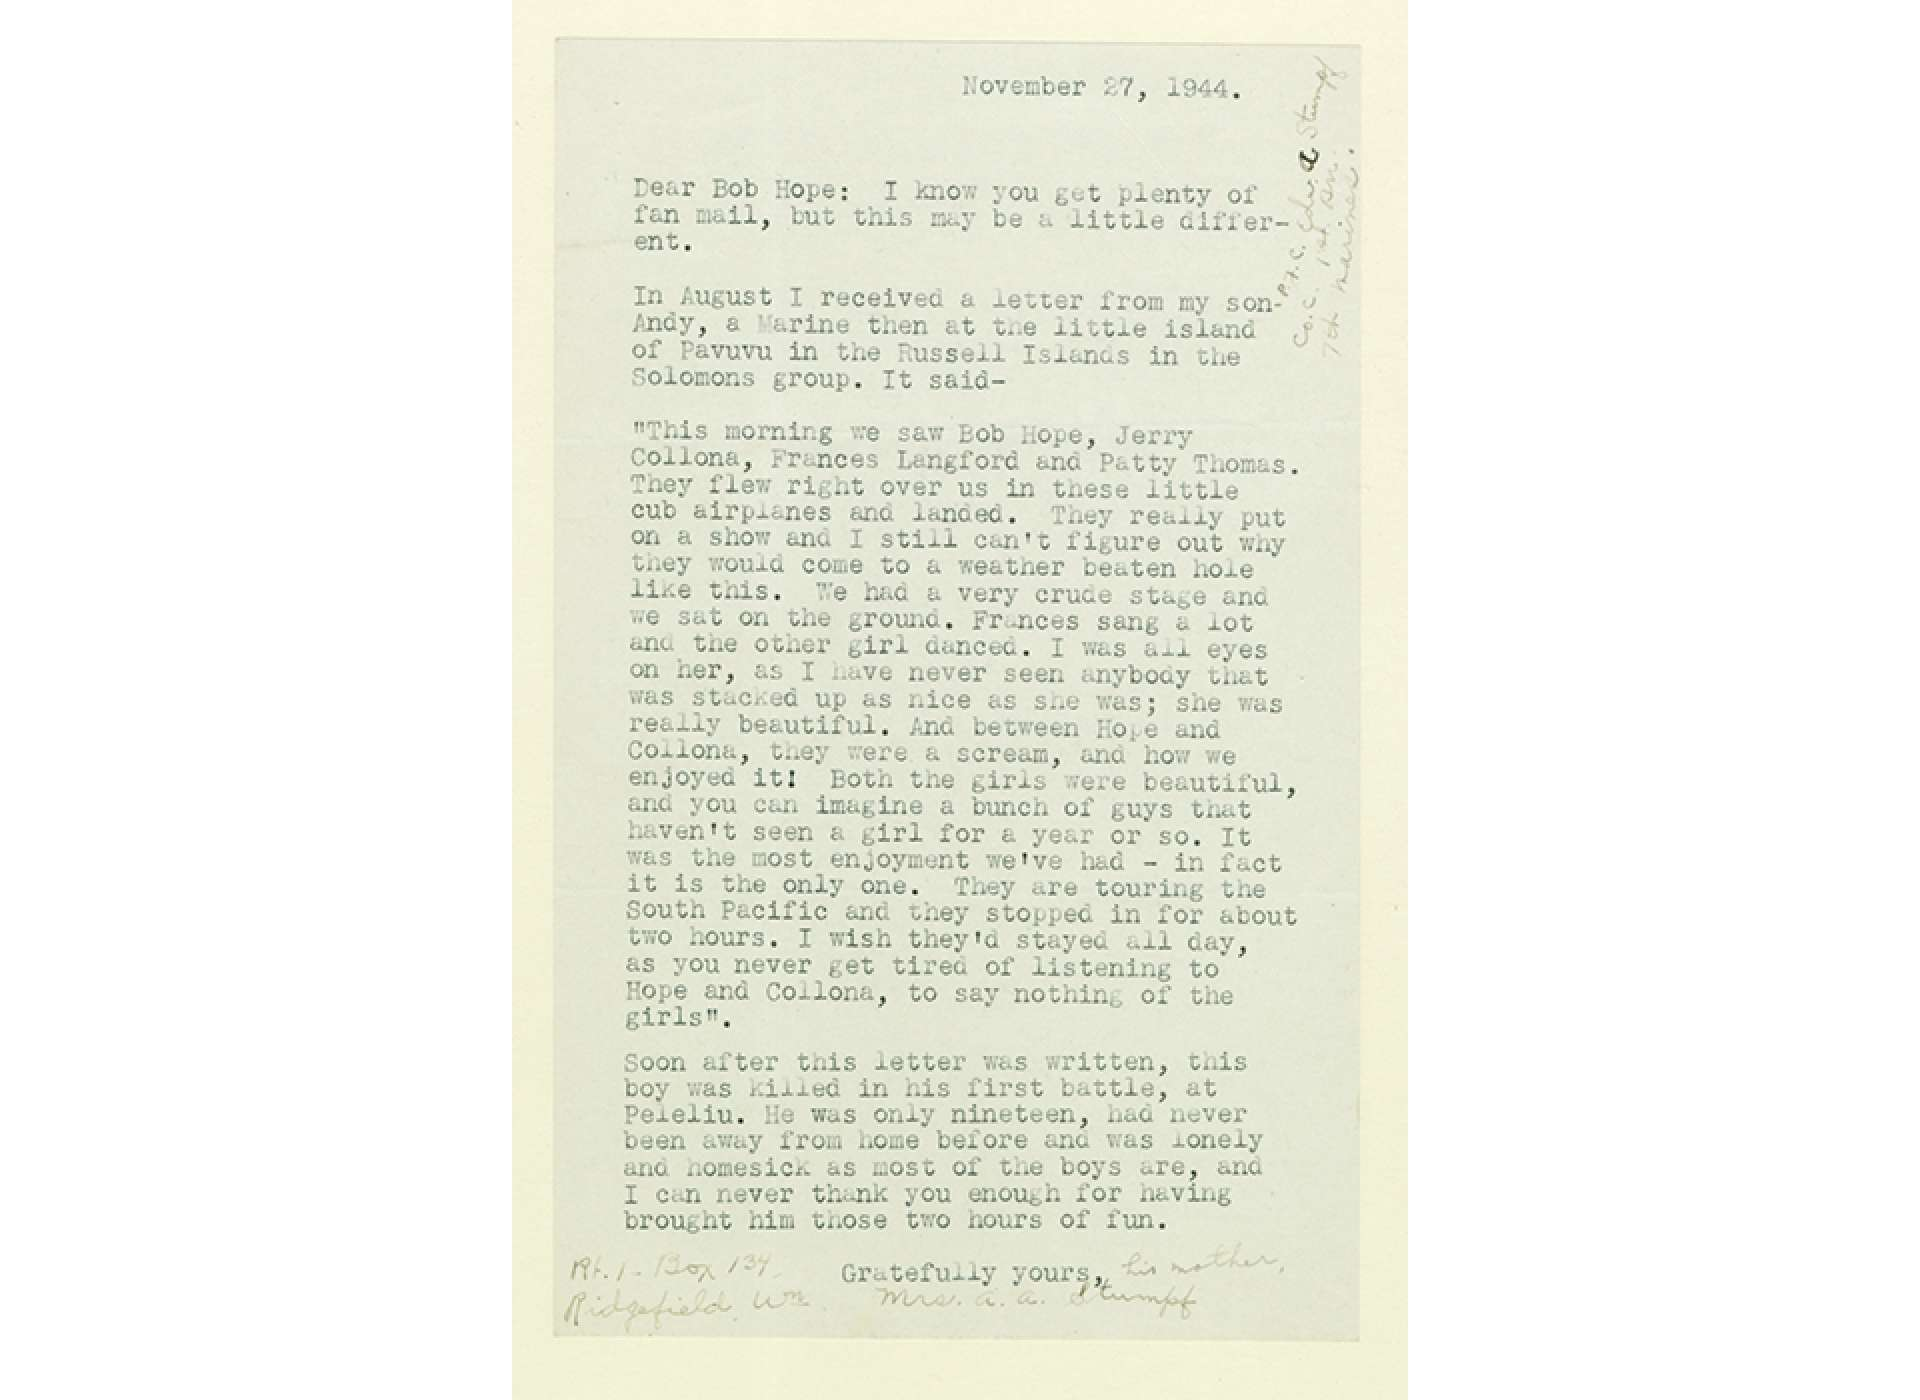 Letter to Bob Hope from Mrs. A. A. Stumpf